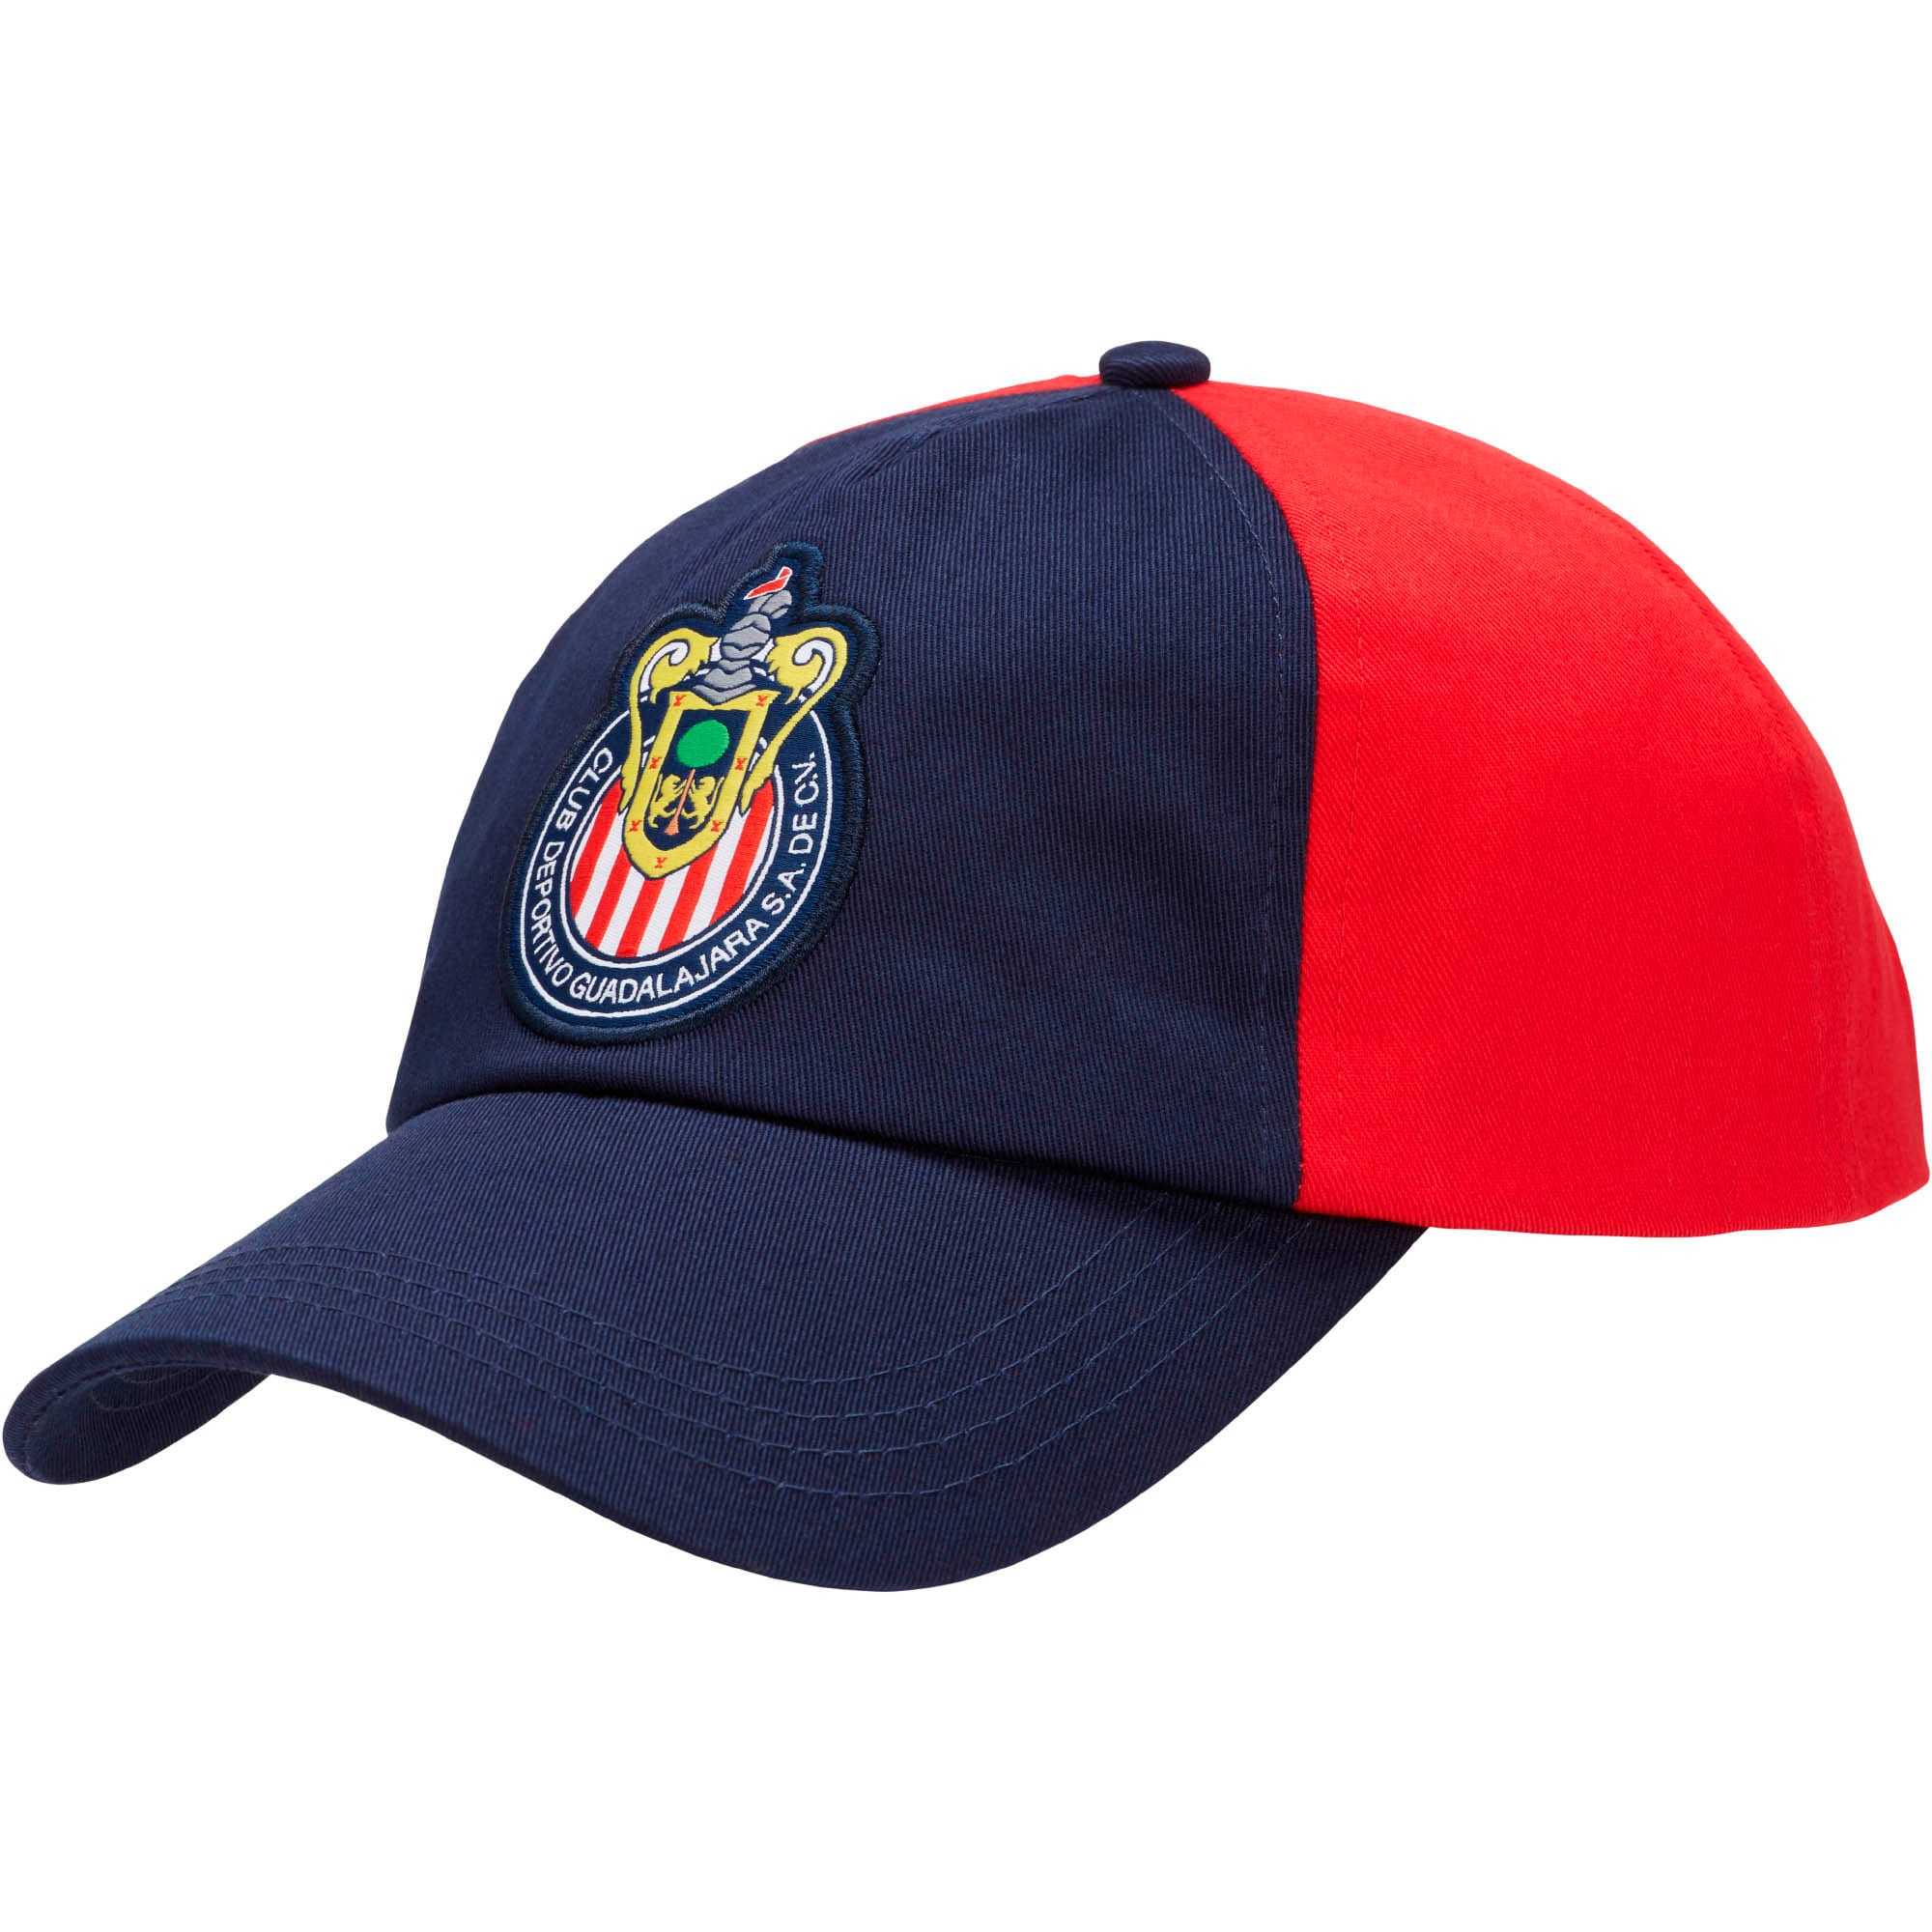 Thumbnail 1 of Chivas Cap, Peacoat-Puma Red, medium